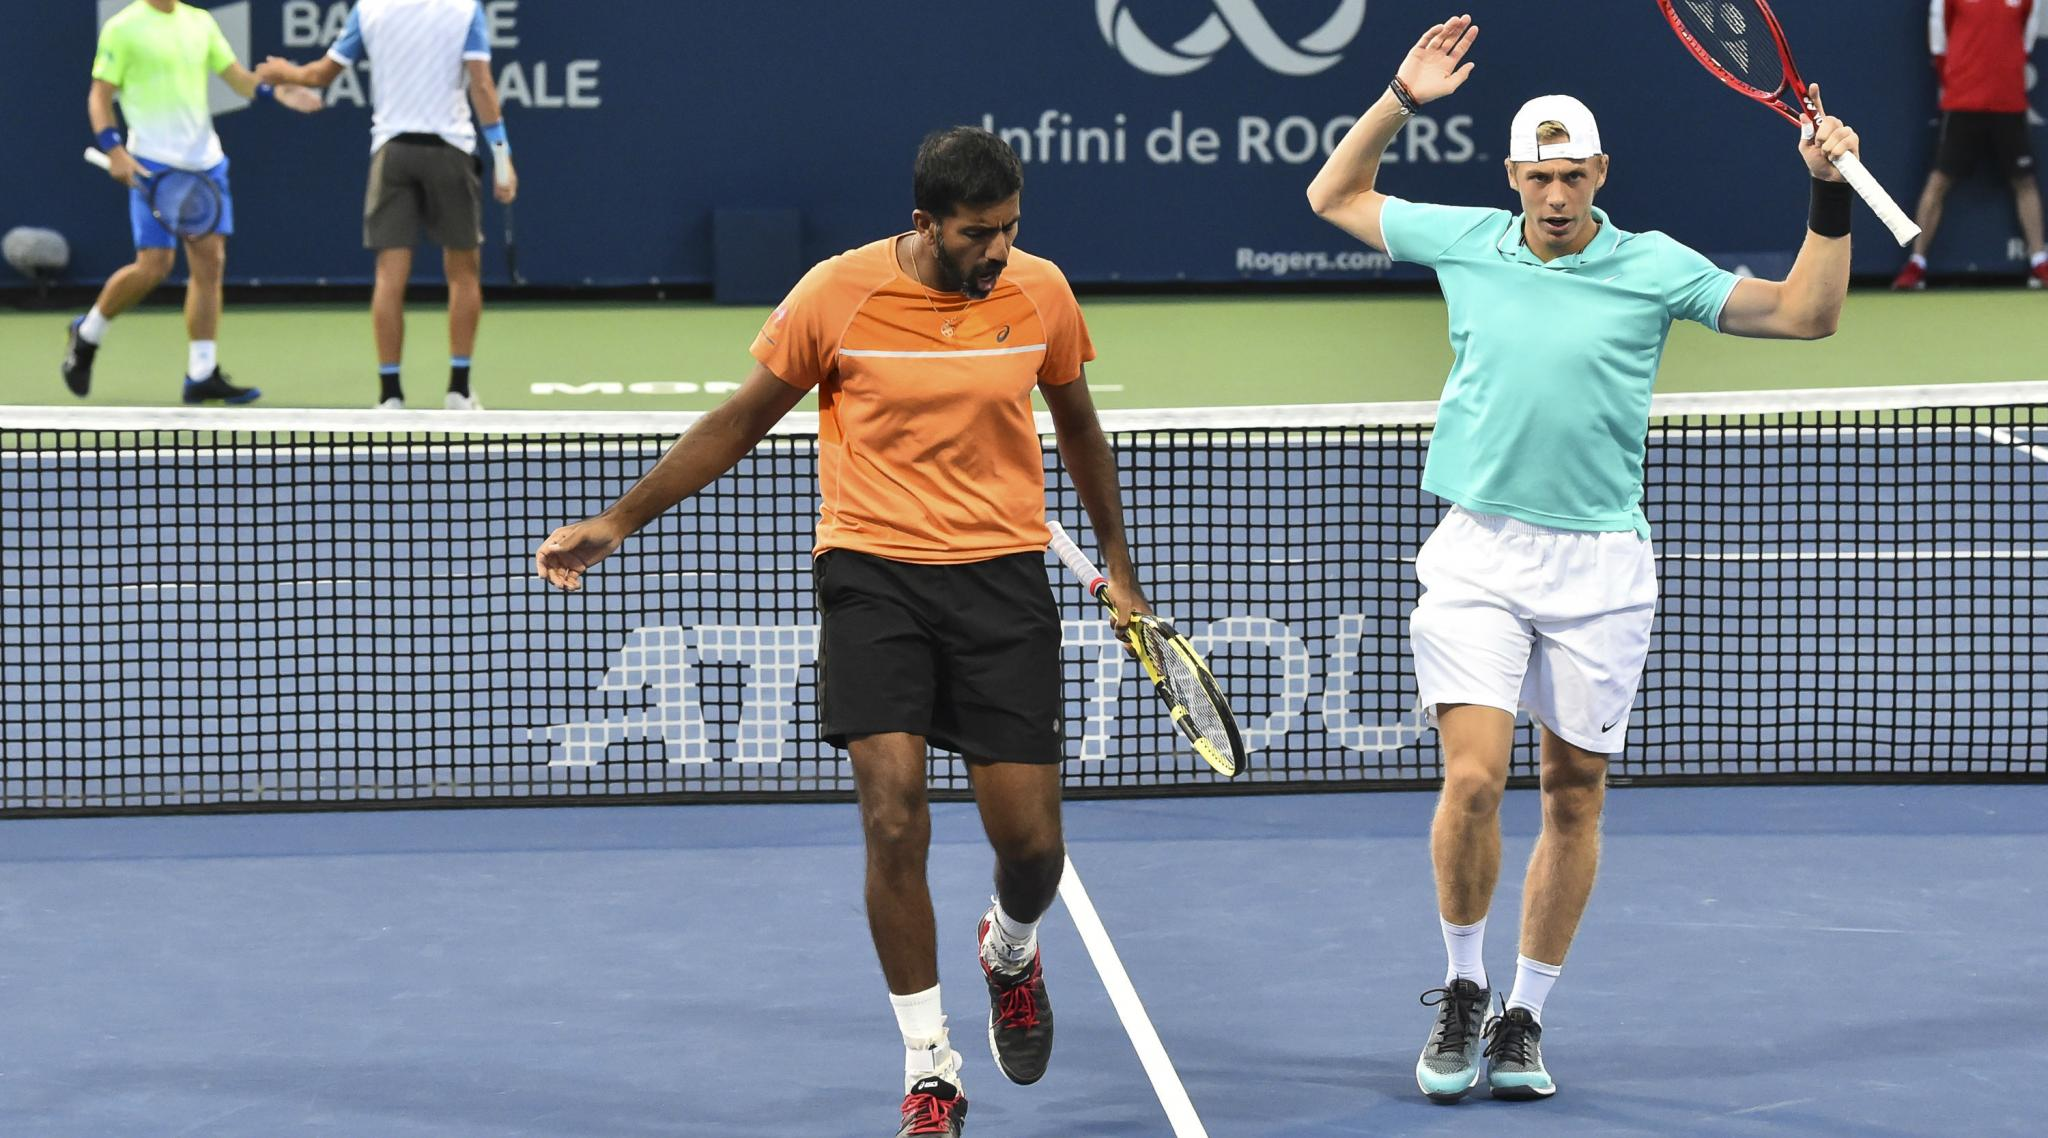 Rohan Bopanna, Denis Shapovalov Crash Out of Paris Masters 2019